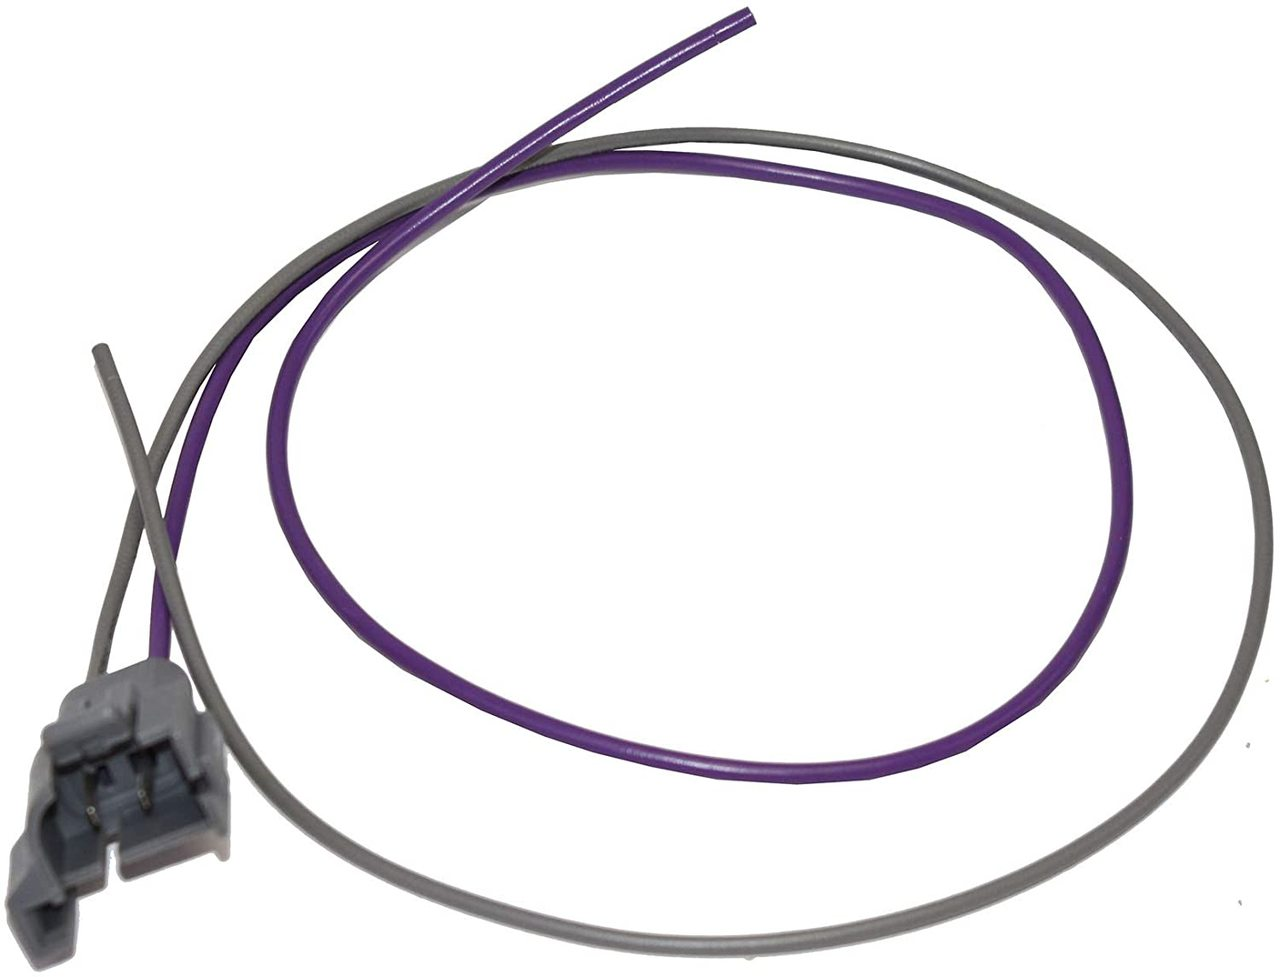 A-Team Performance EST Marine Electronic Ignition Distributor and Coil Upgrade Kit V8 5.0 5.7 7.4 18-5514 3857449 Compatible with Mercruiser EFI Chevy Chevrolet Volvo Penta OMC